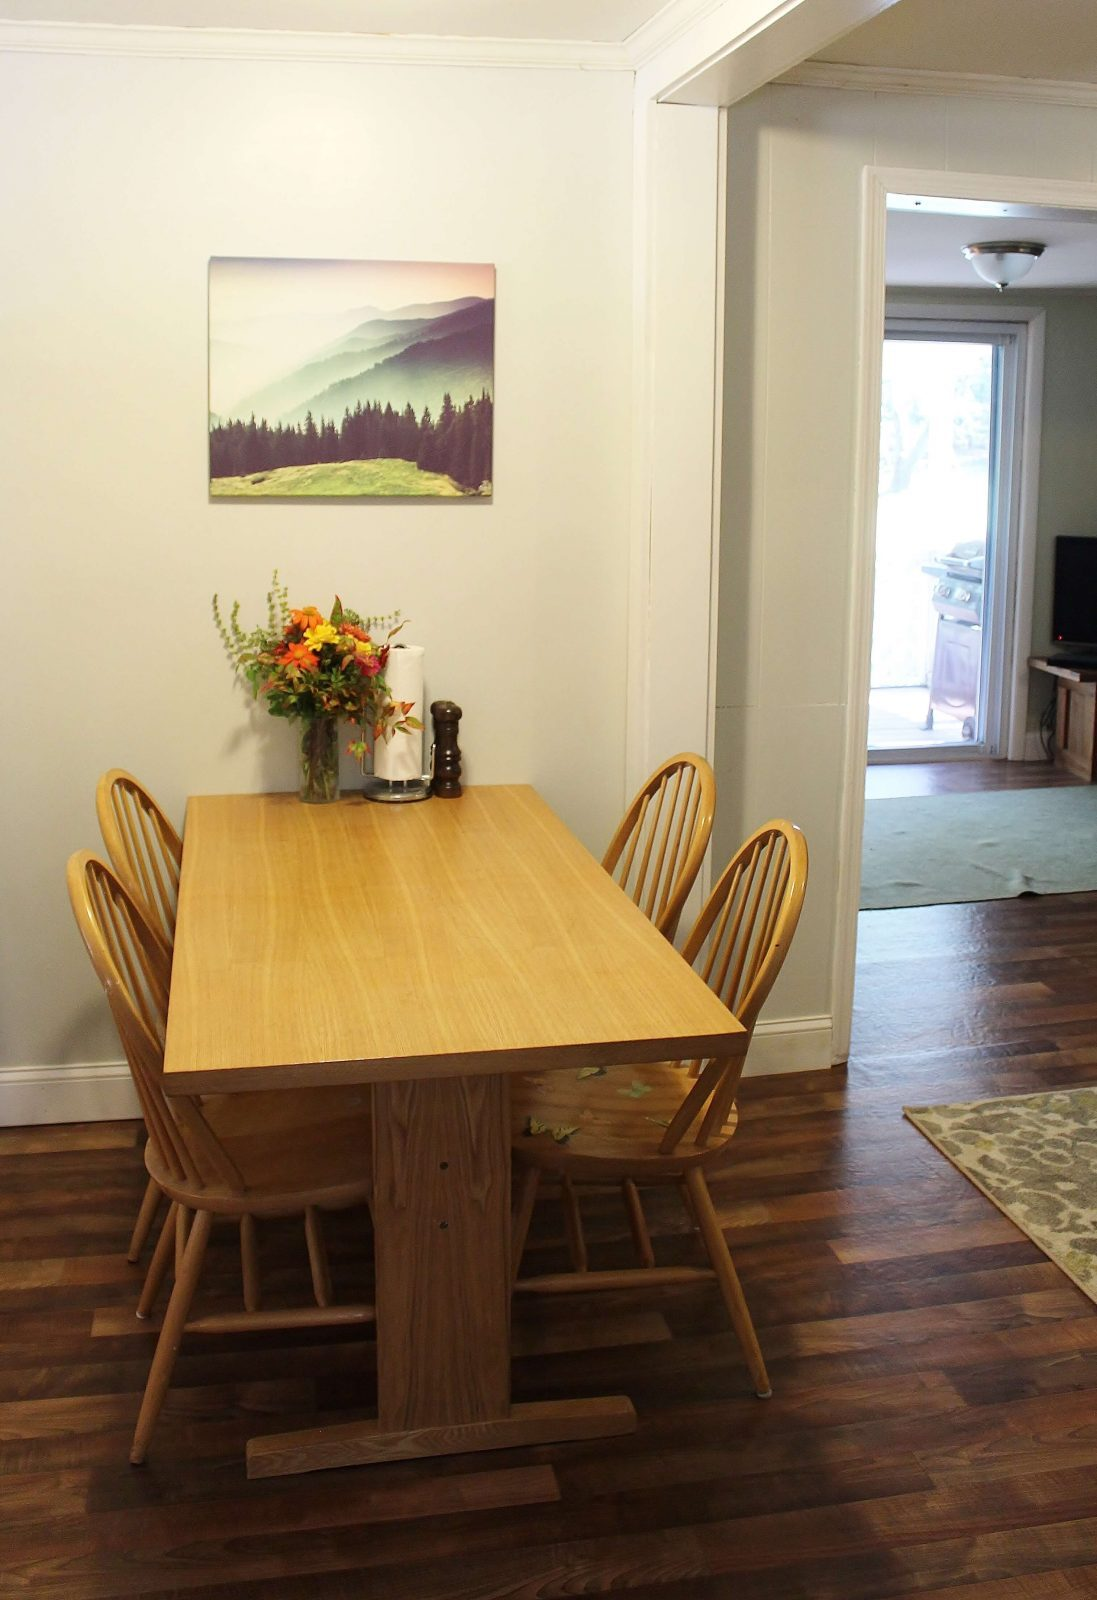 wall mural over dining table